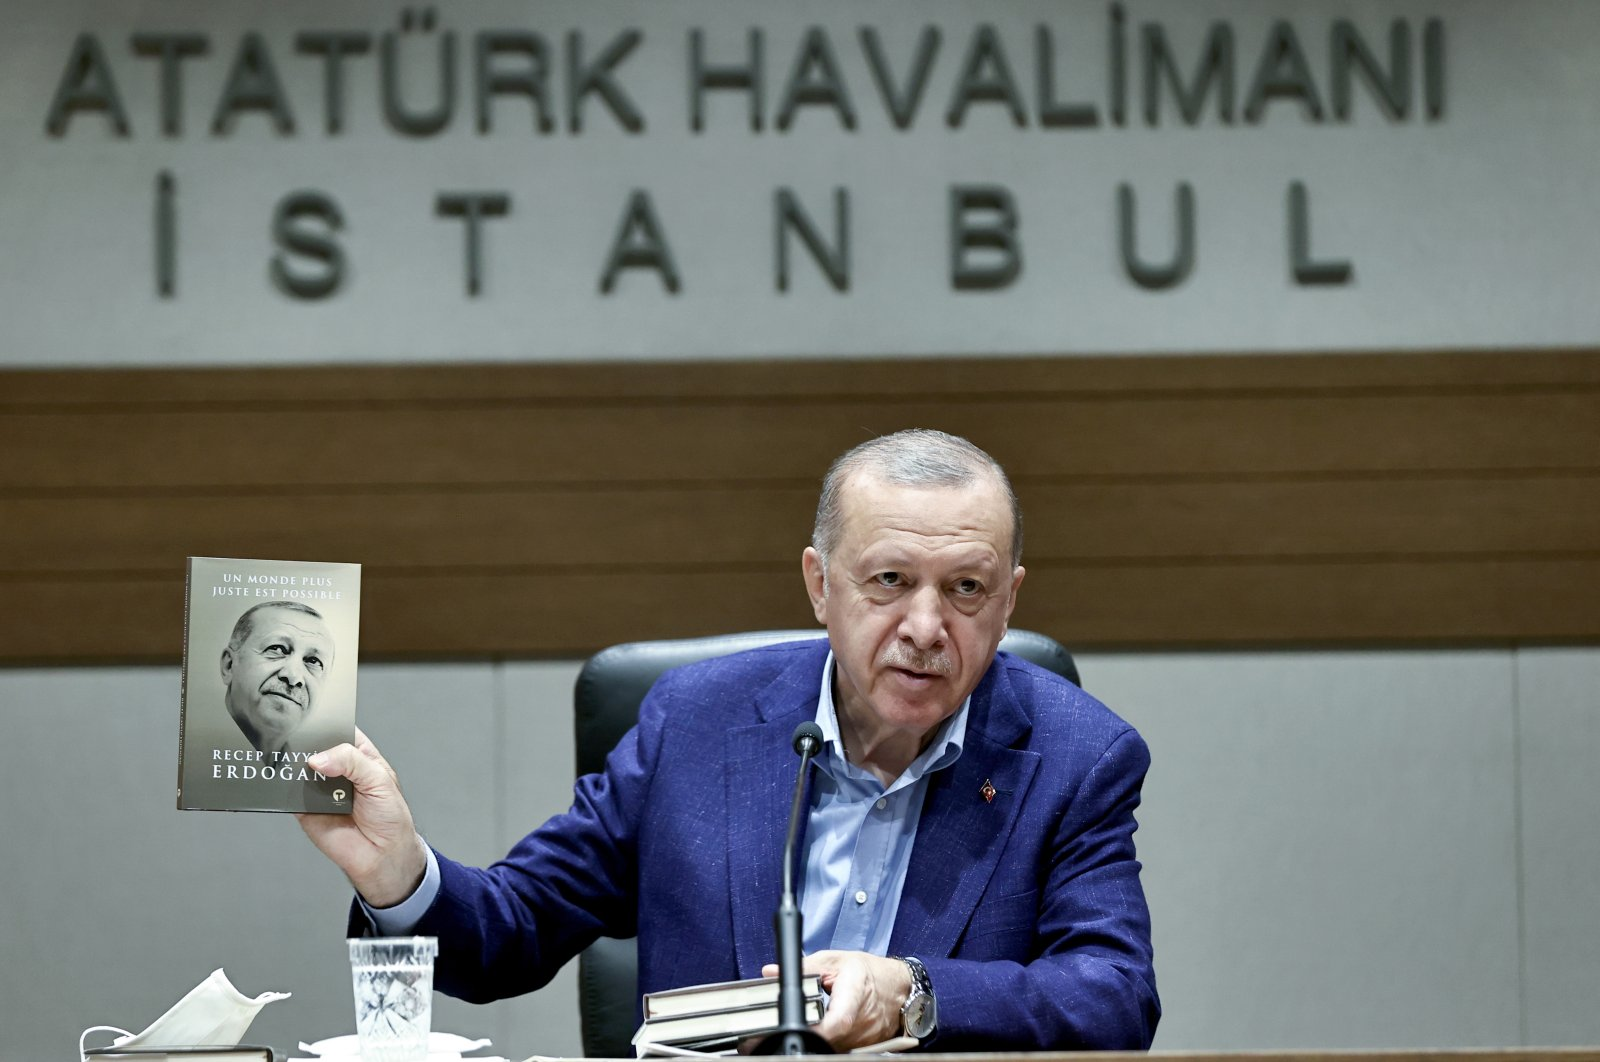 """President Recep Tayyip Erdoğan holds his book """"A Fairer World Is Possible"""" while addressing reporters ahead of his visit to the United States, Istanbul, Turkey, Sept. 19, 2021. (AA Photo)"""